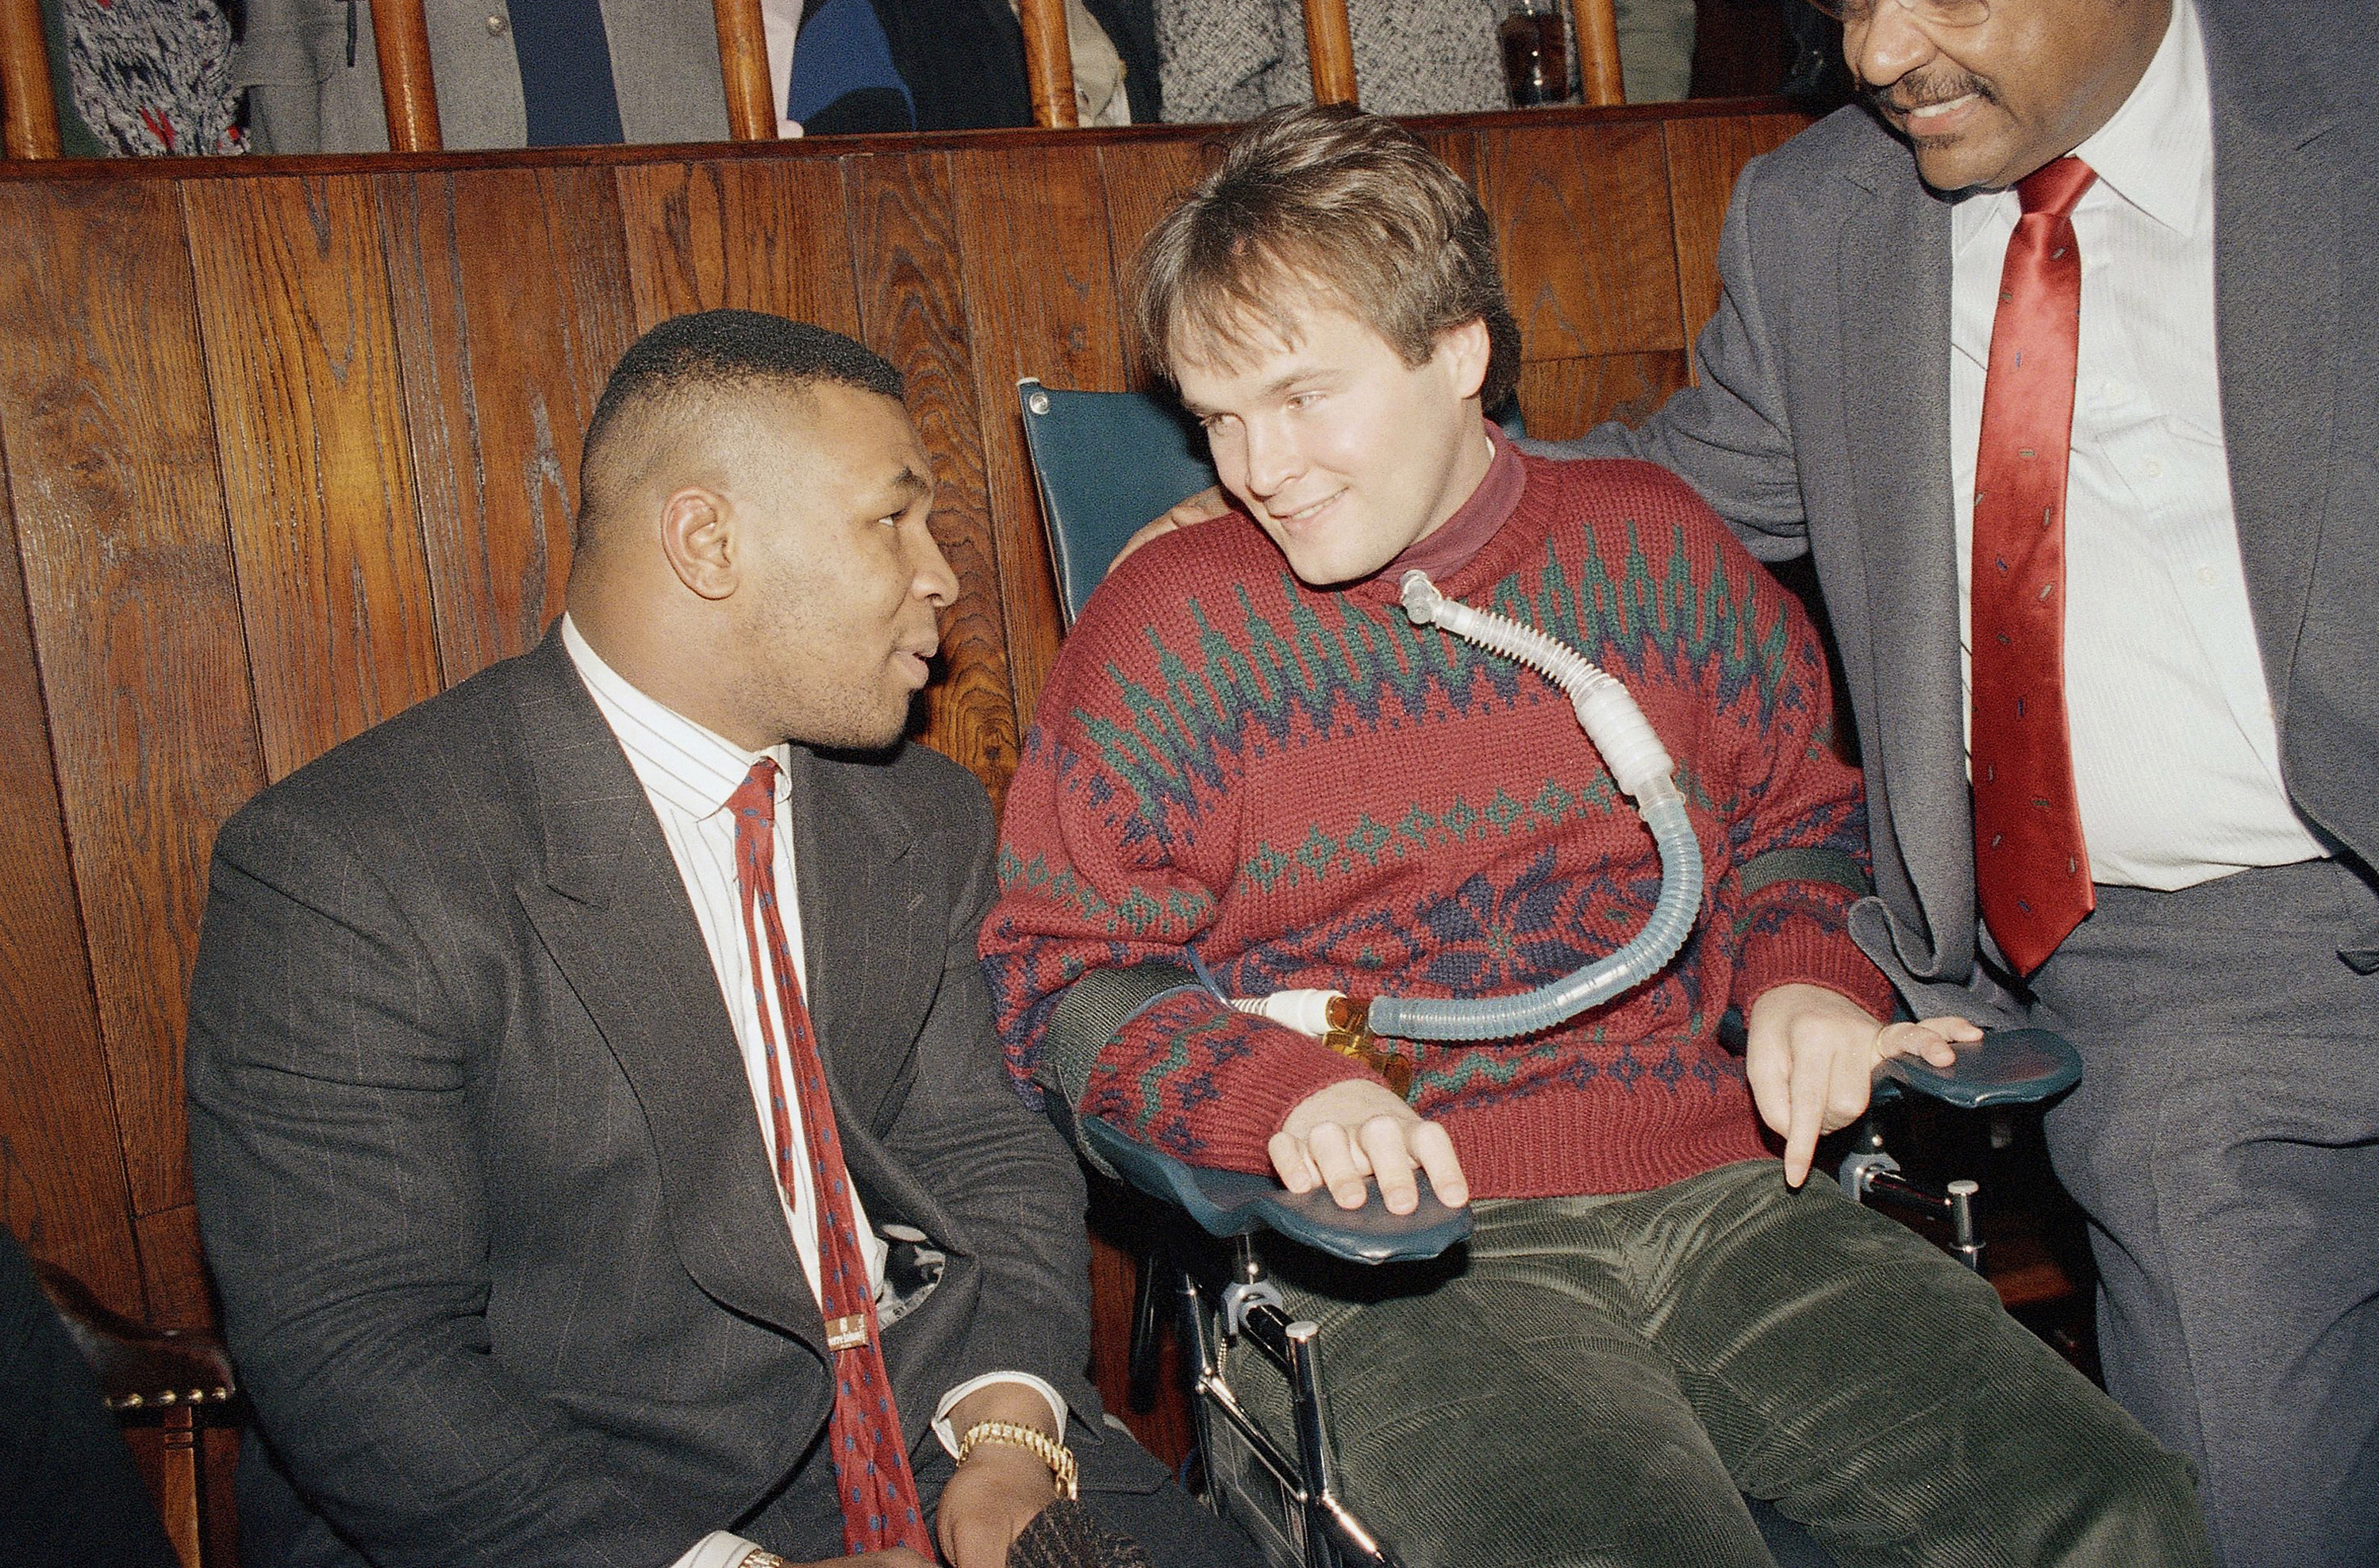 Mike Tyson (R) meets with paralyzed police officer Steven McDonald at the Patrolmen's Benevolent Association Christmas party held at Jimmy Weston's restaurant in New York. (AP Photo/Gerald Herbert)